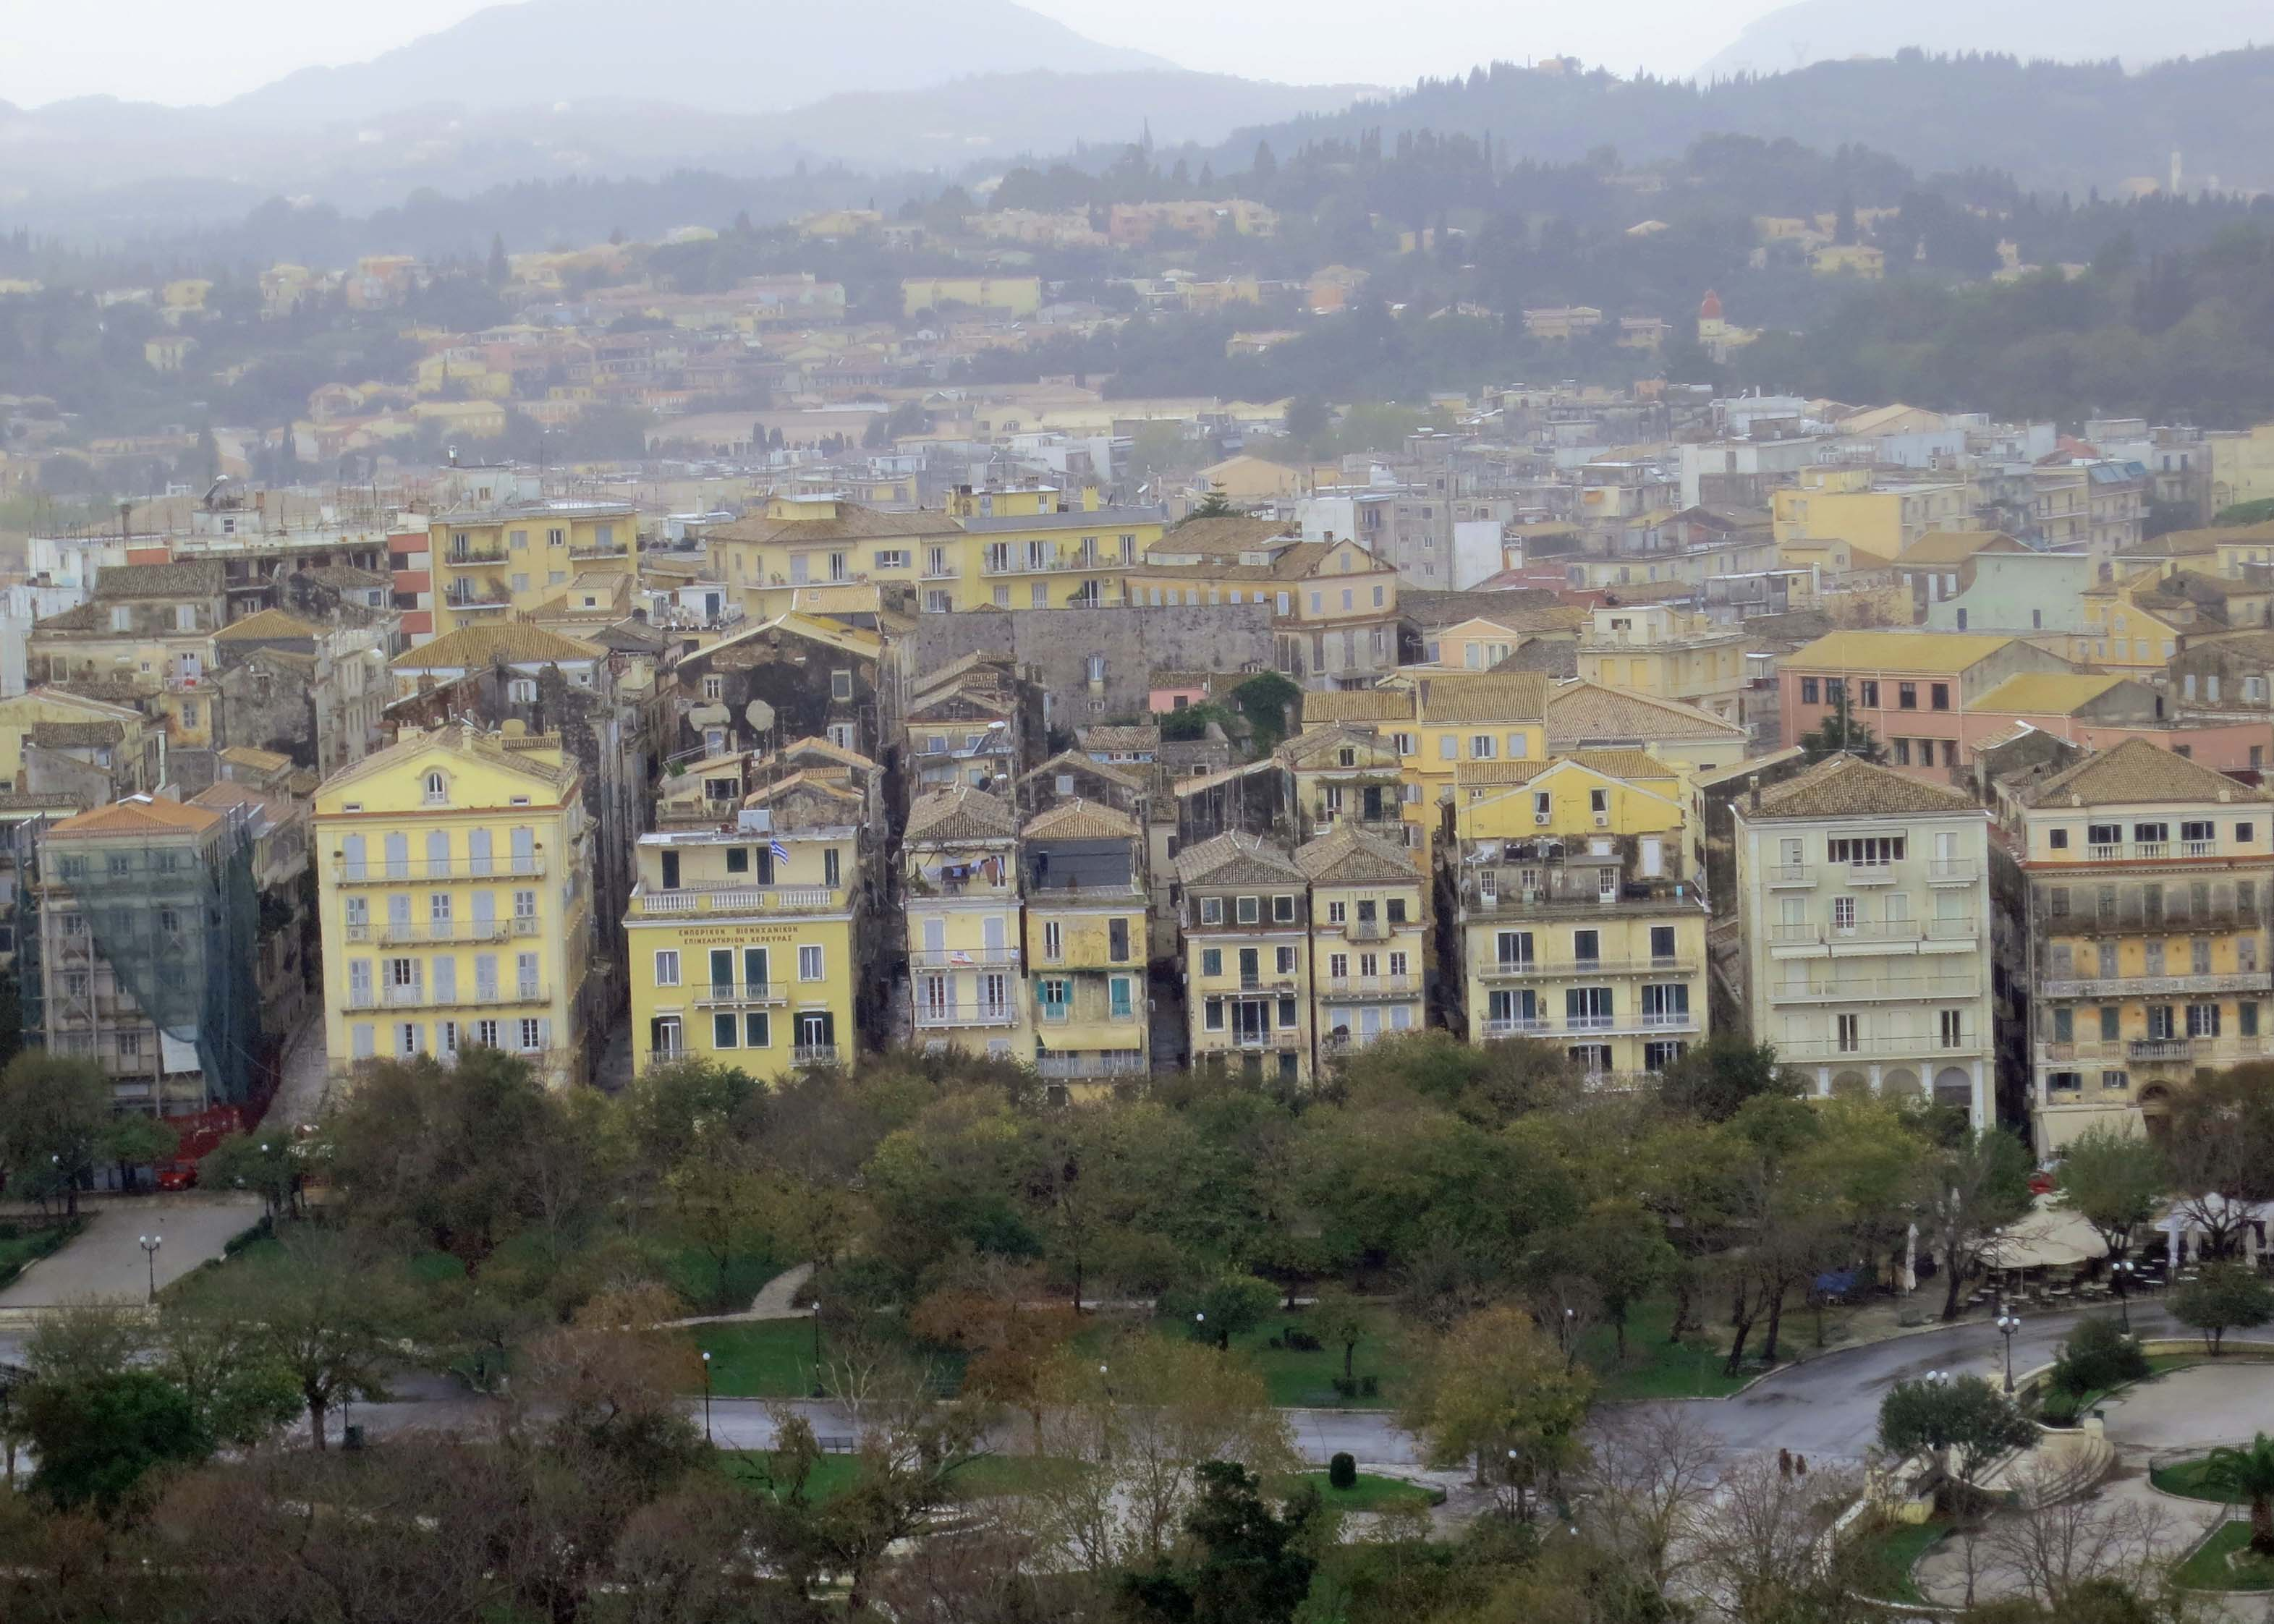 A view of Corfu with its multi-colored buildings and tree covered hills. I took this photo looking down from the Old Fort.